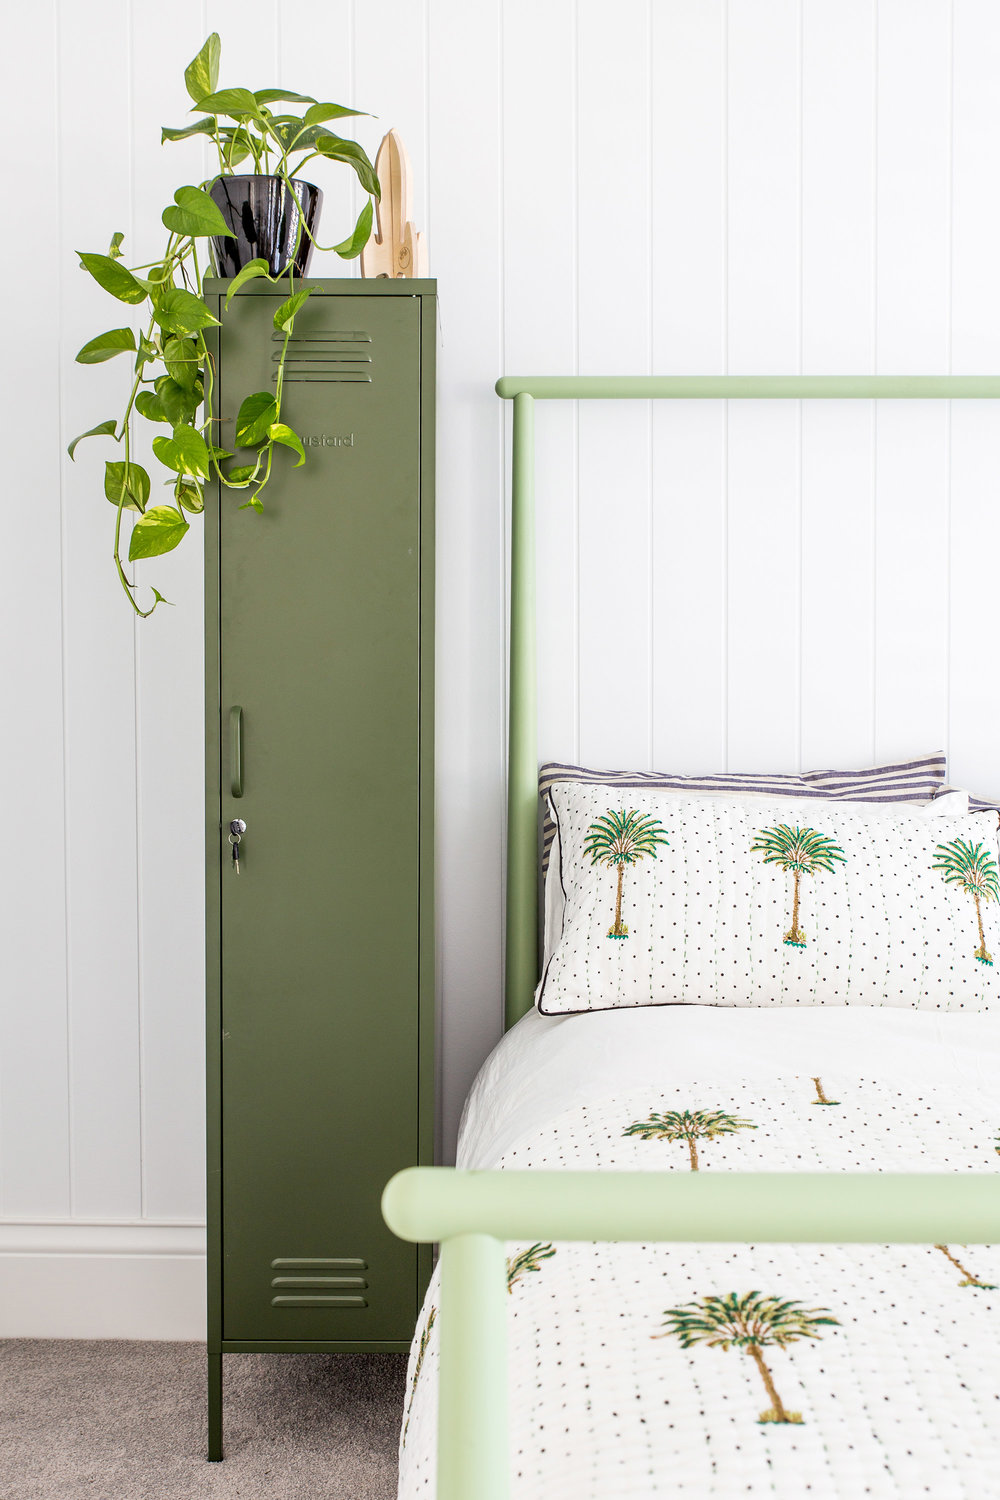 Listen Up, Under-20 Girls: These Teen Bedroom Ideas Will Make Yours the Coolest on the Block